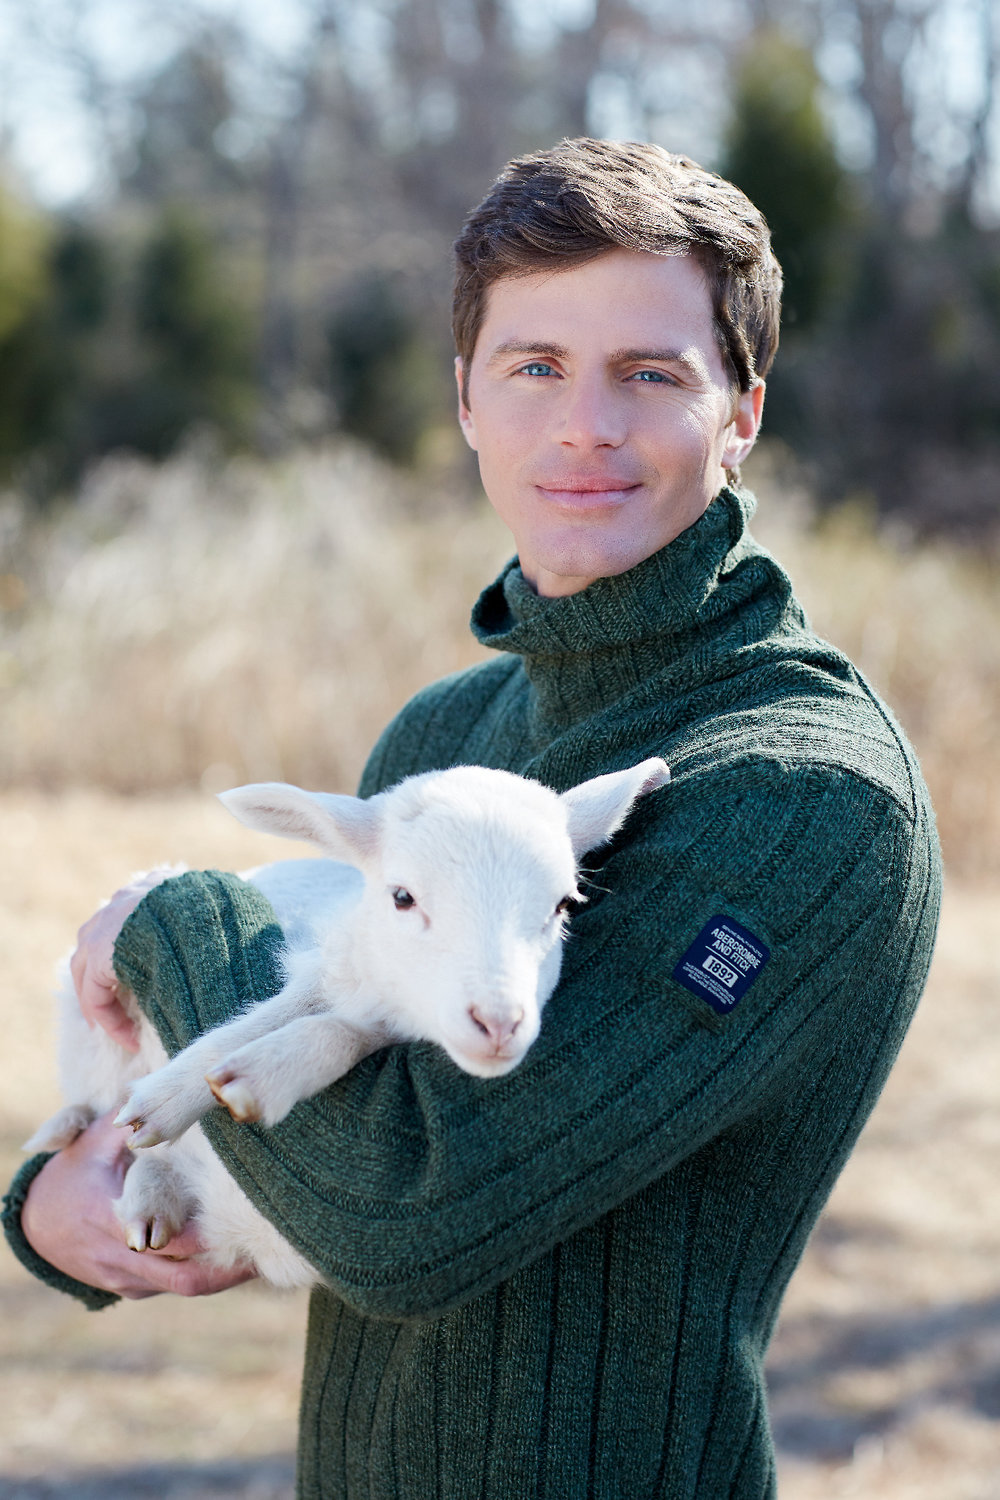 Fashionable Farmer + Abercrombie & Fitch + Lamb